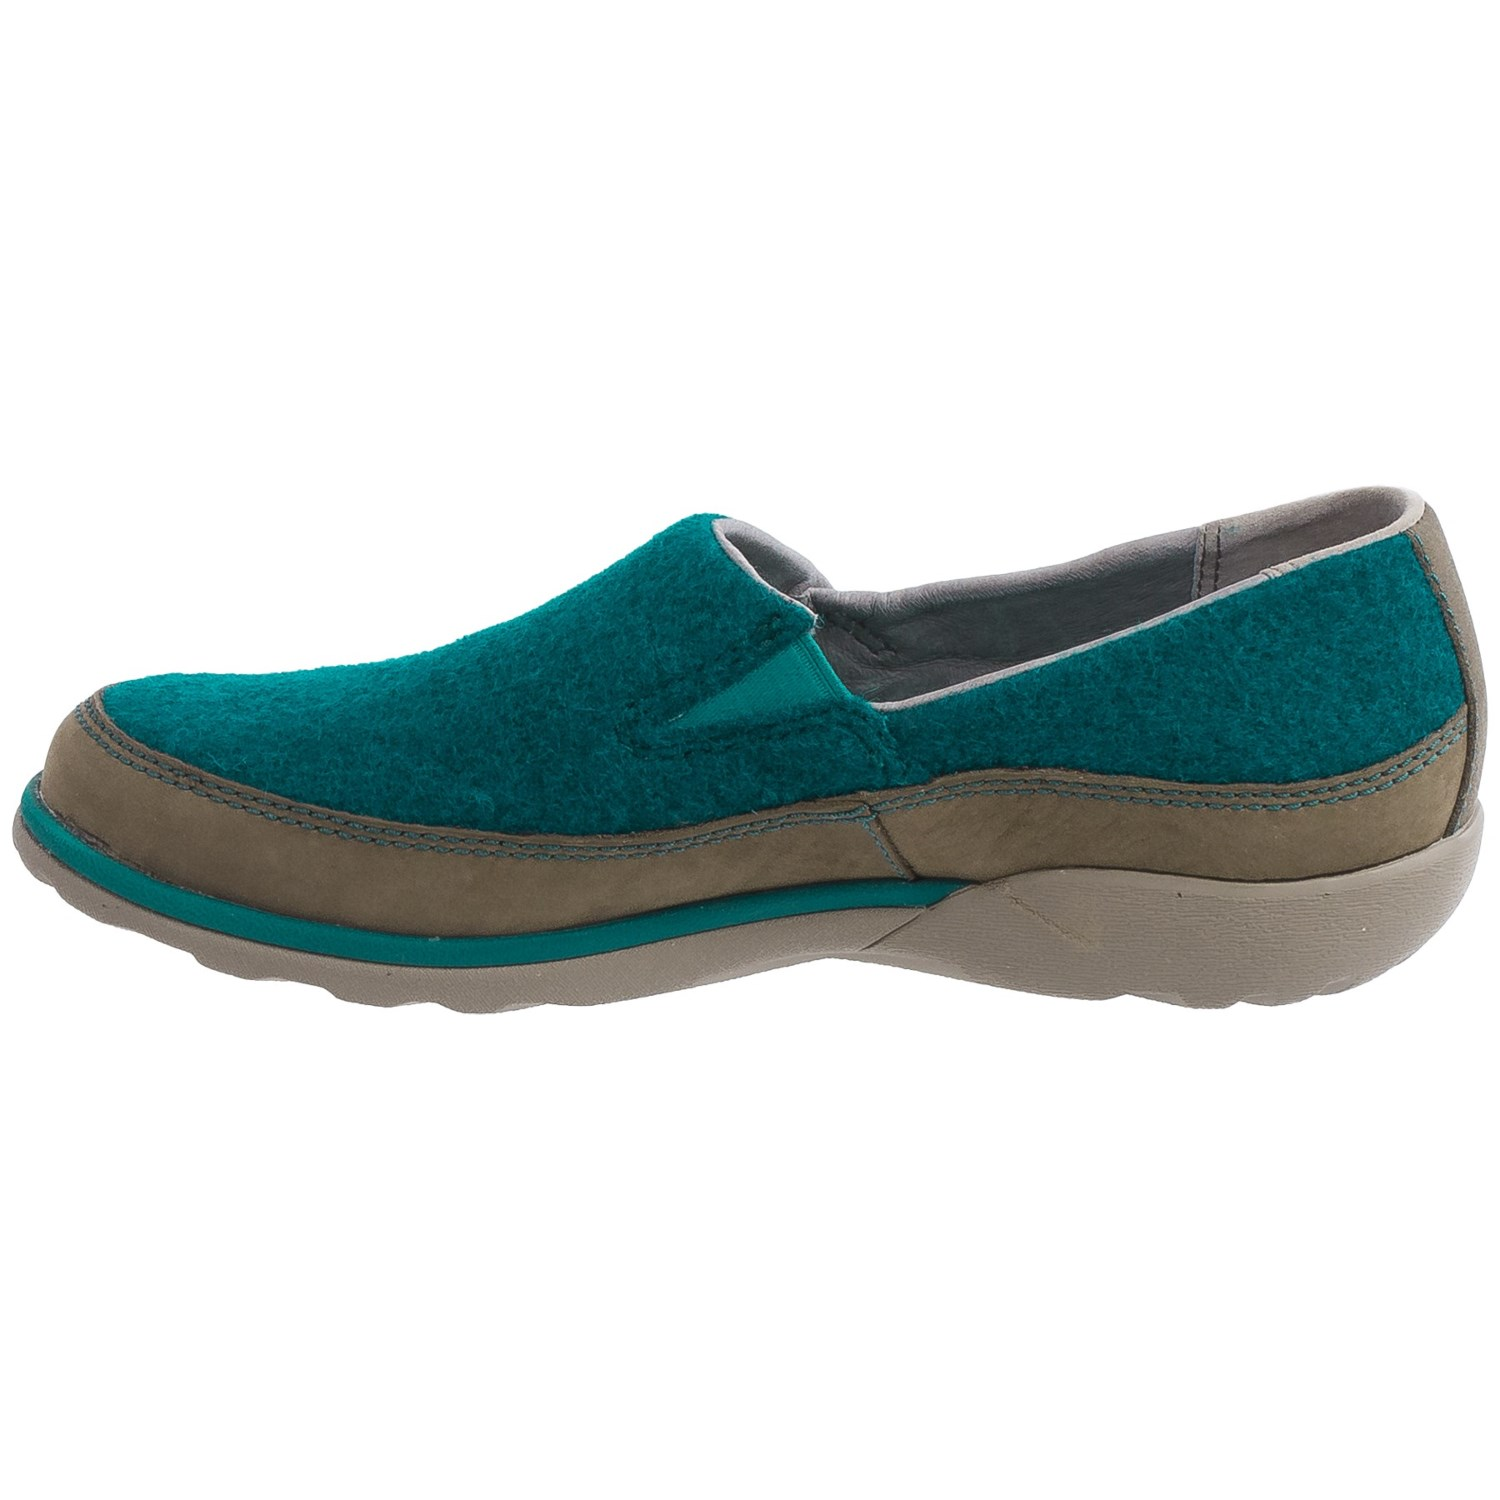 Chaco Sloan Shoes Slip Ons For Women